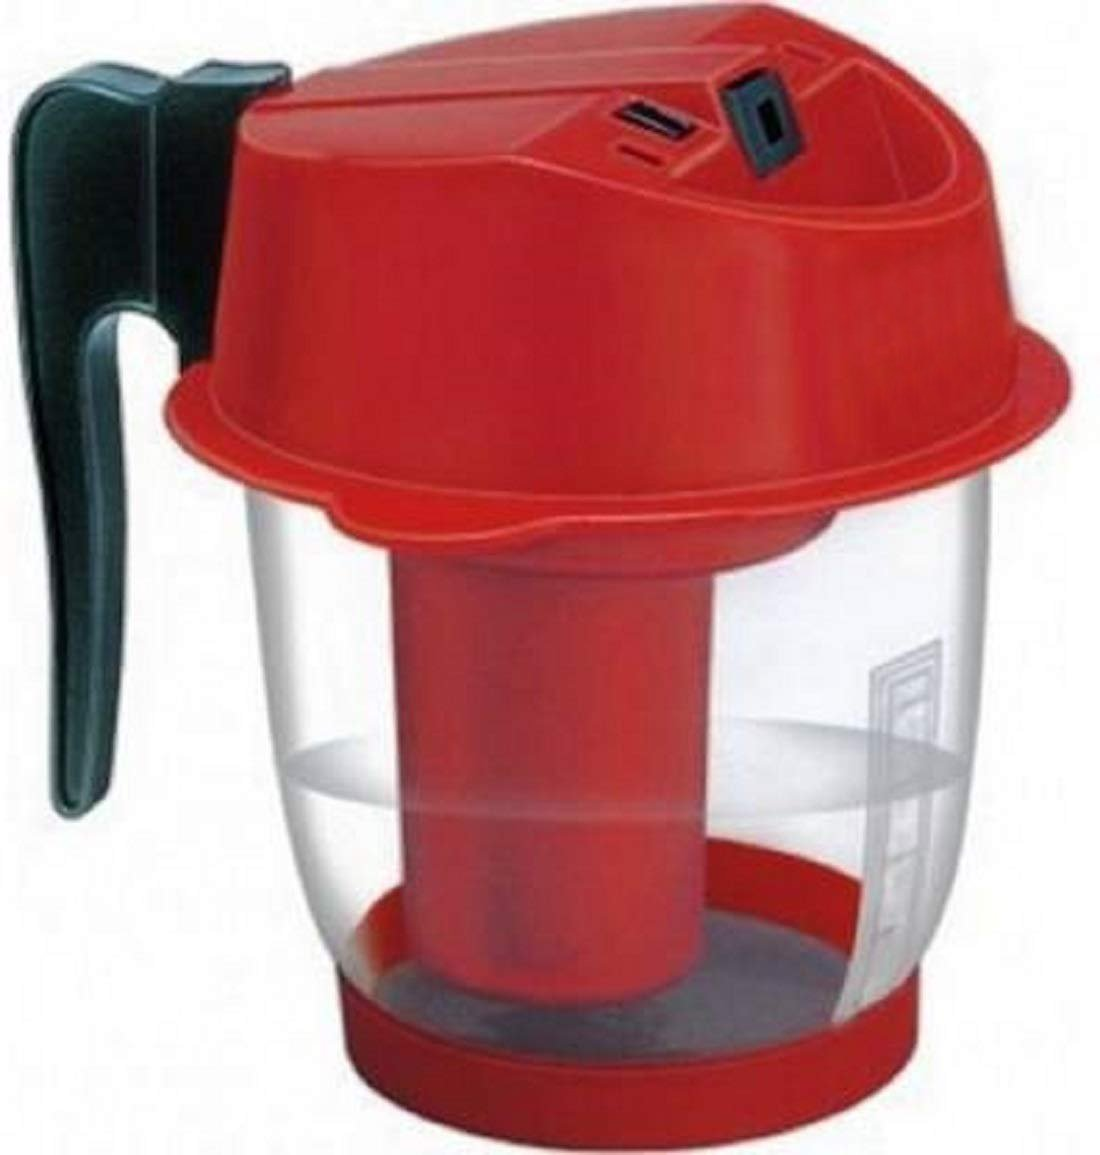 0252 Multipurpose Steamer for Steam Inhaler and Facial Purposes